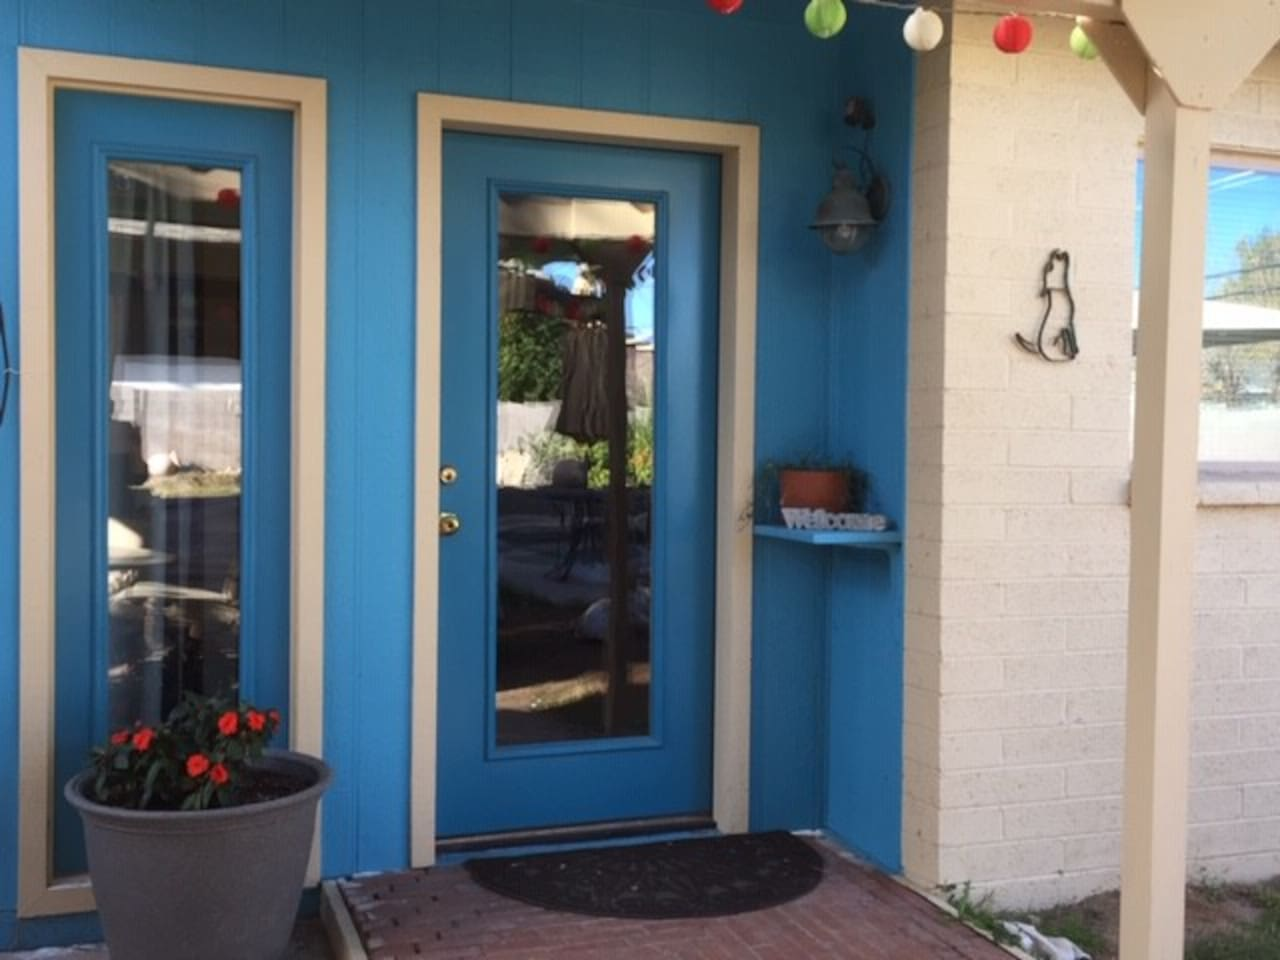 Your own little AirBNB guest house